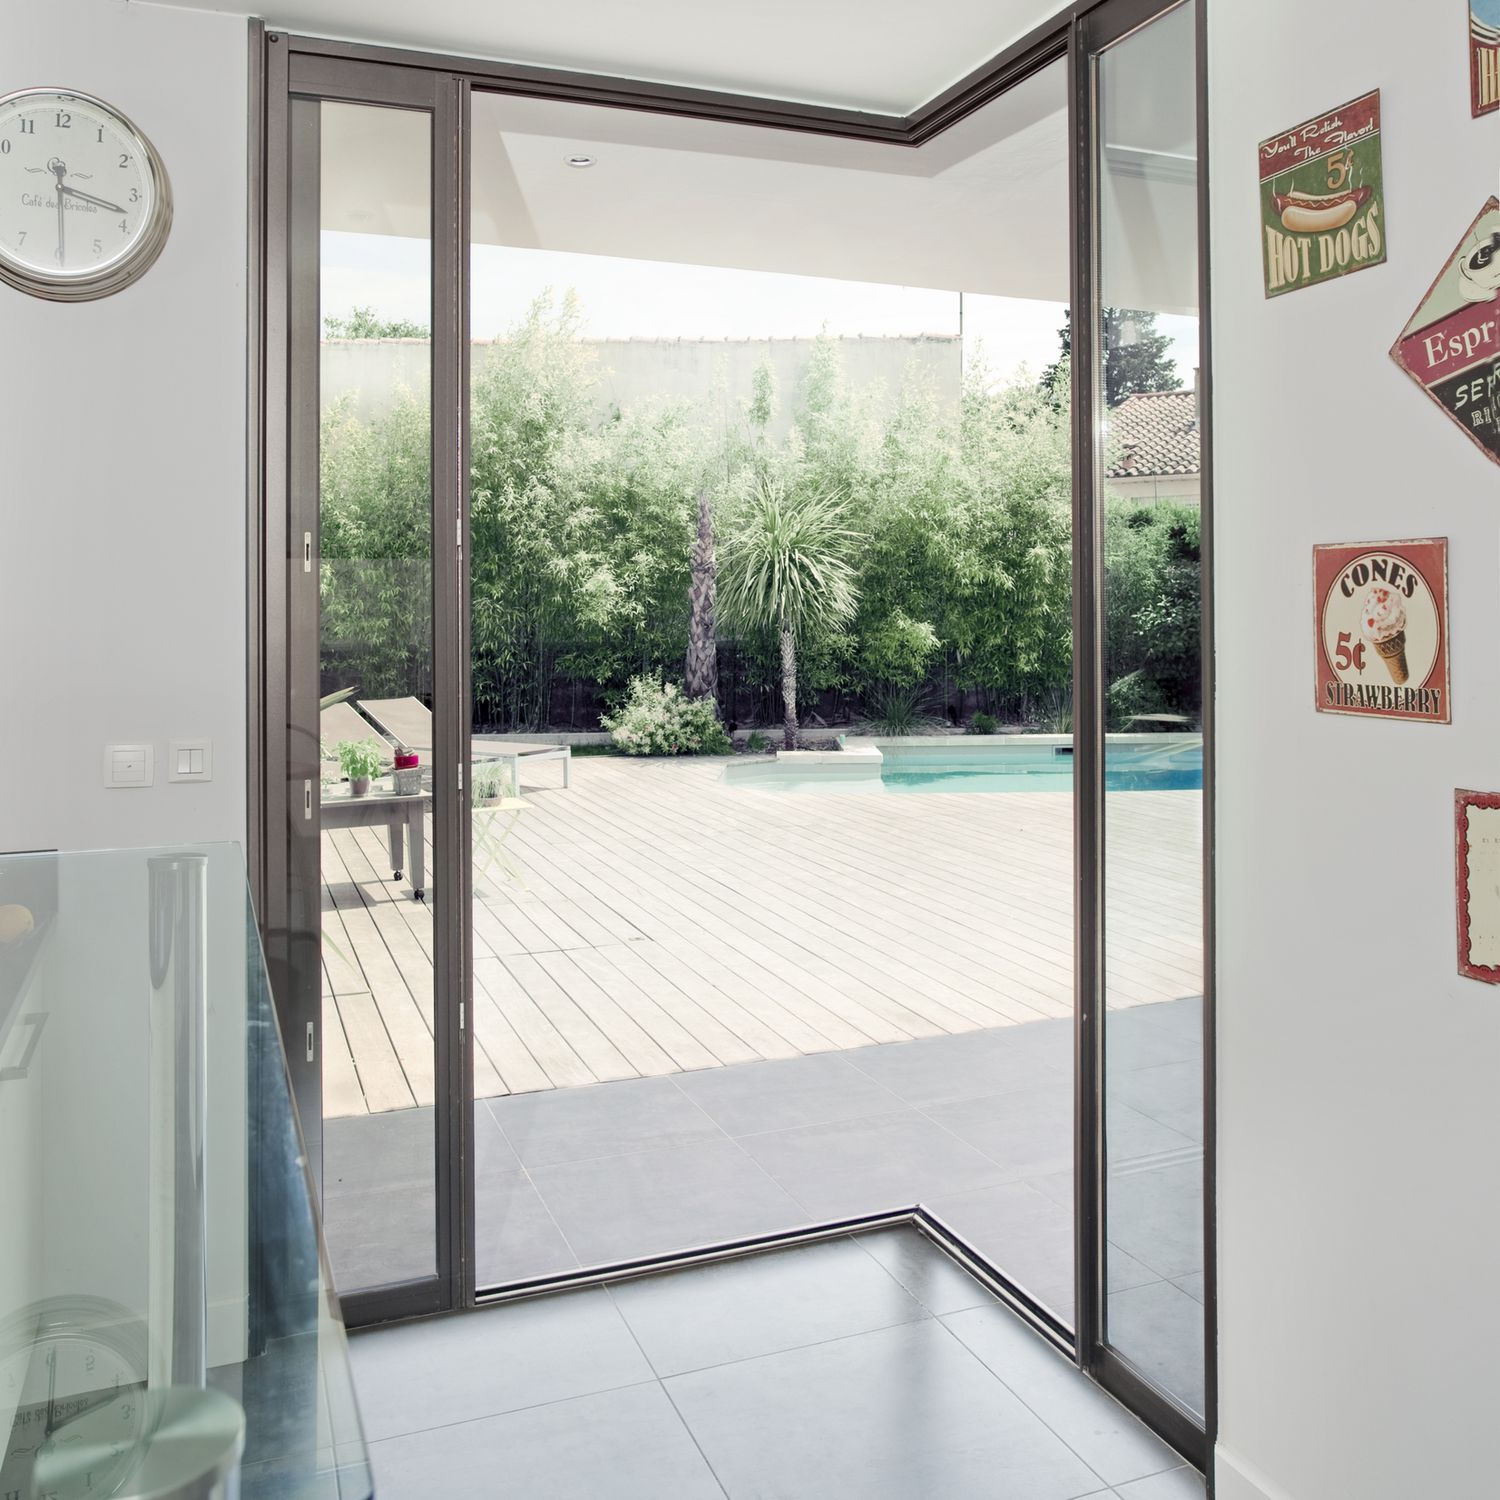 Sliding patio door aluminum triple glazed double glazed sliding patio door aluminum triple glazed double glazed satin road ca planetlyrics